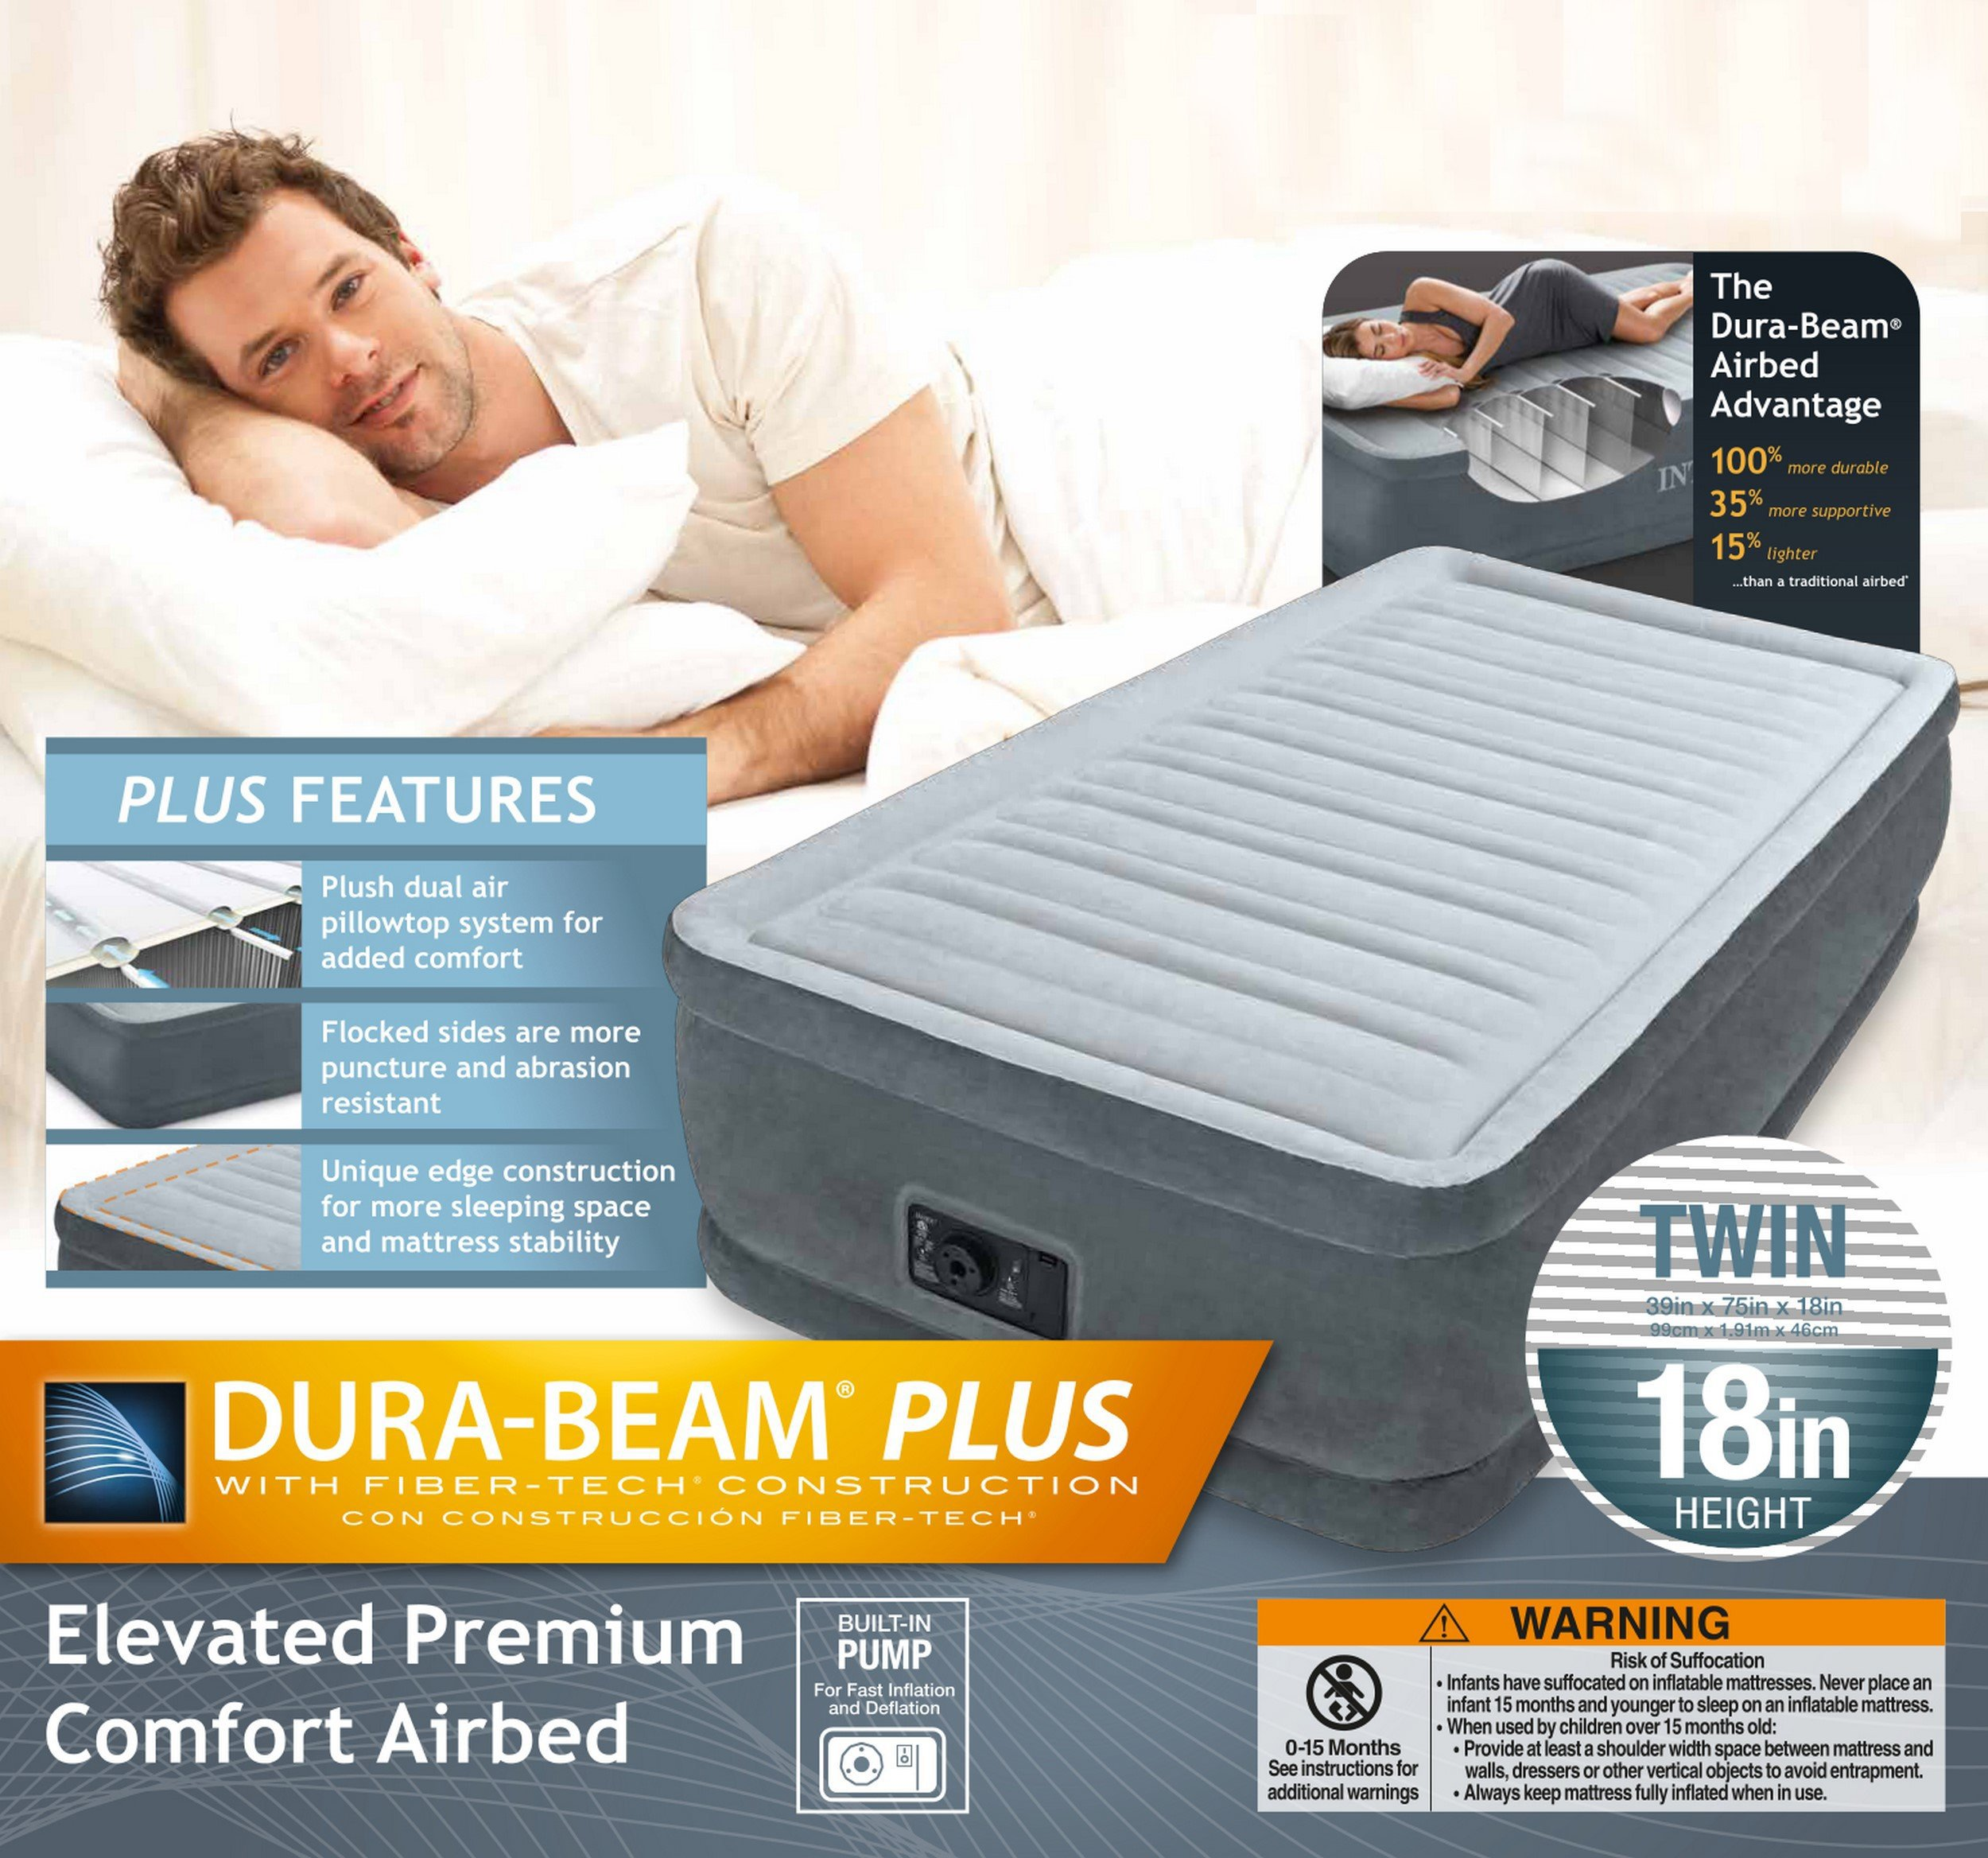 Intex Comfort Plush Elevated Dura-Beam Airbed with Built-in Electric Pump, Bed Height 18'', Twin by Intex (Image #25)